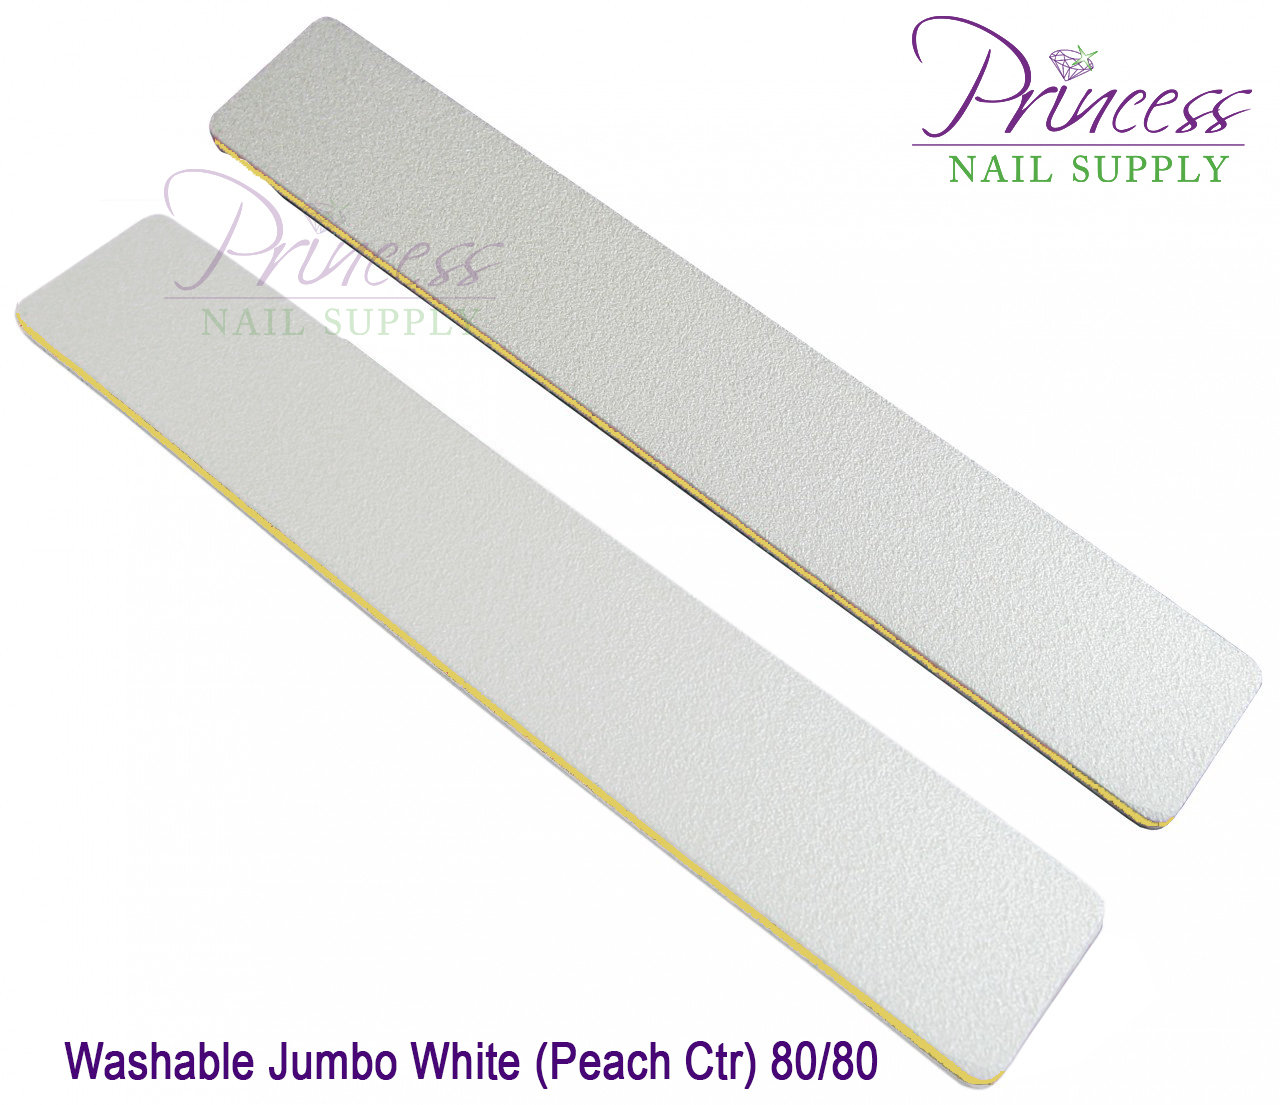 Princess Nail Files, 50 per pack - Washable Jumbo White/Peach, Grit: 80/80(#20499